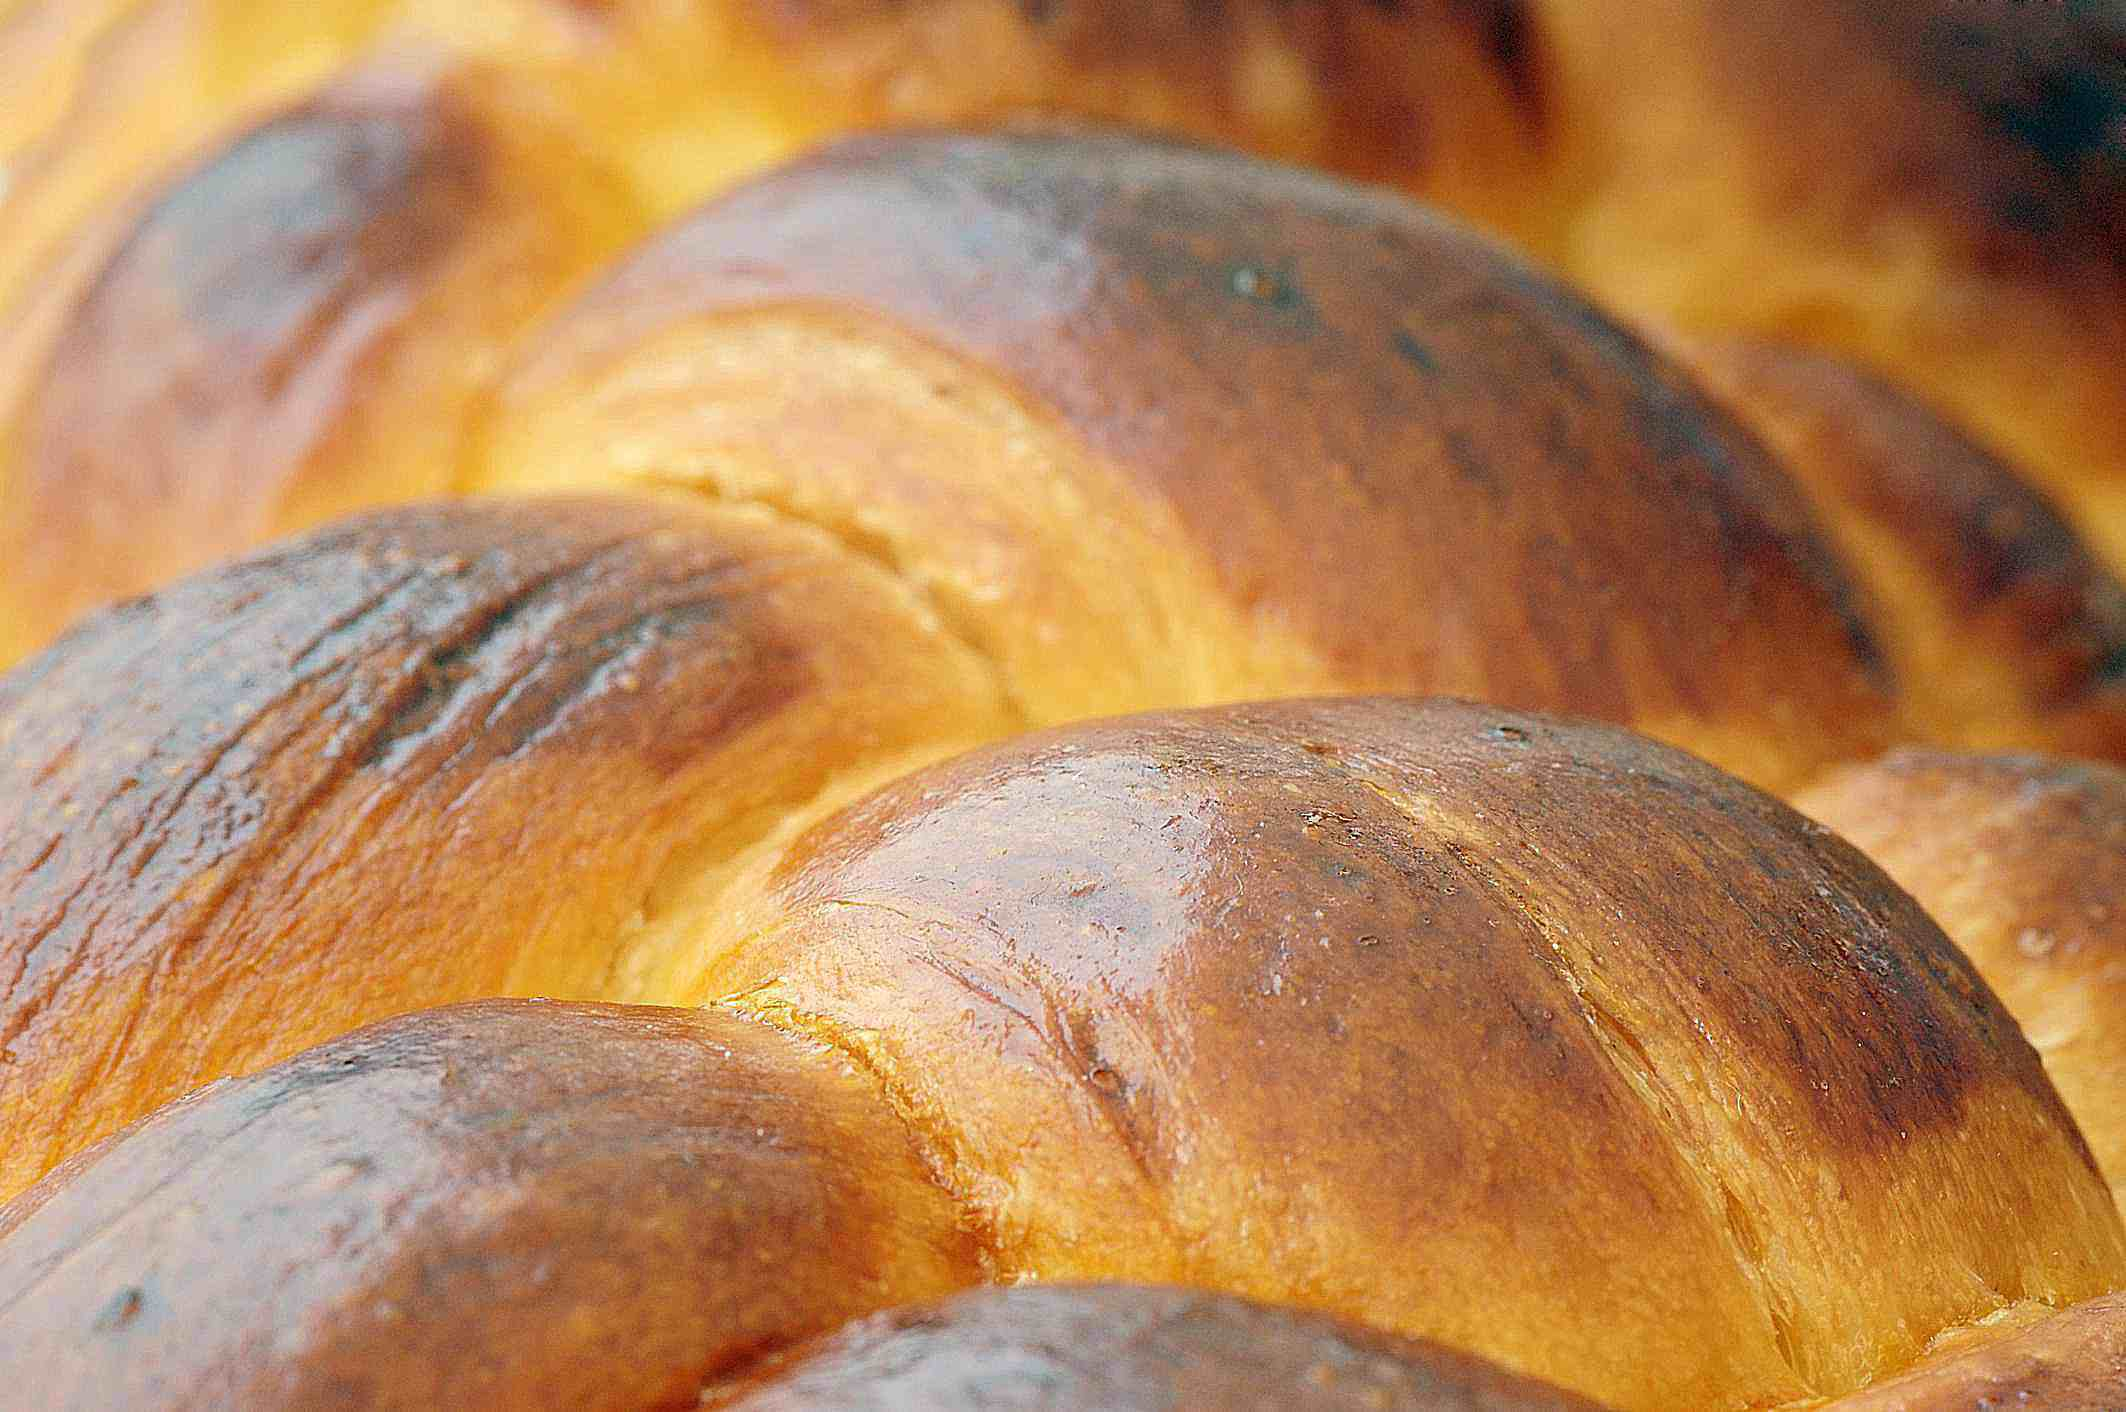 Braided White Bread